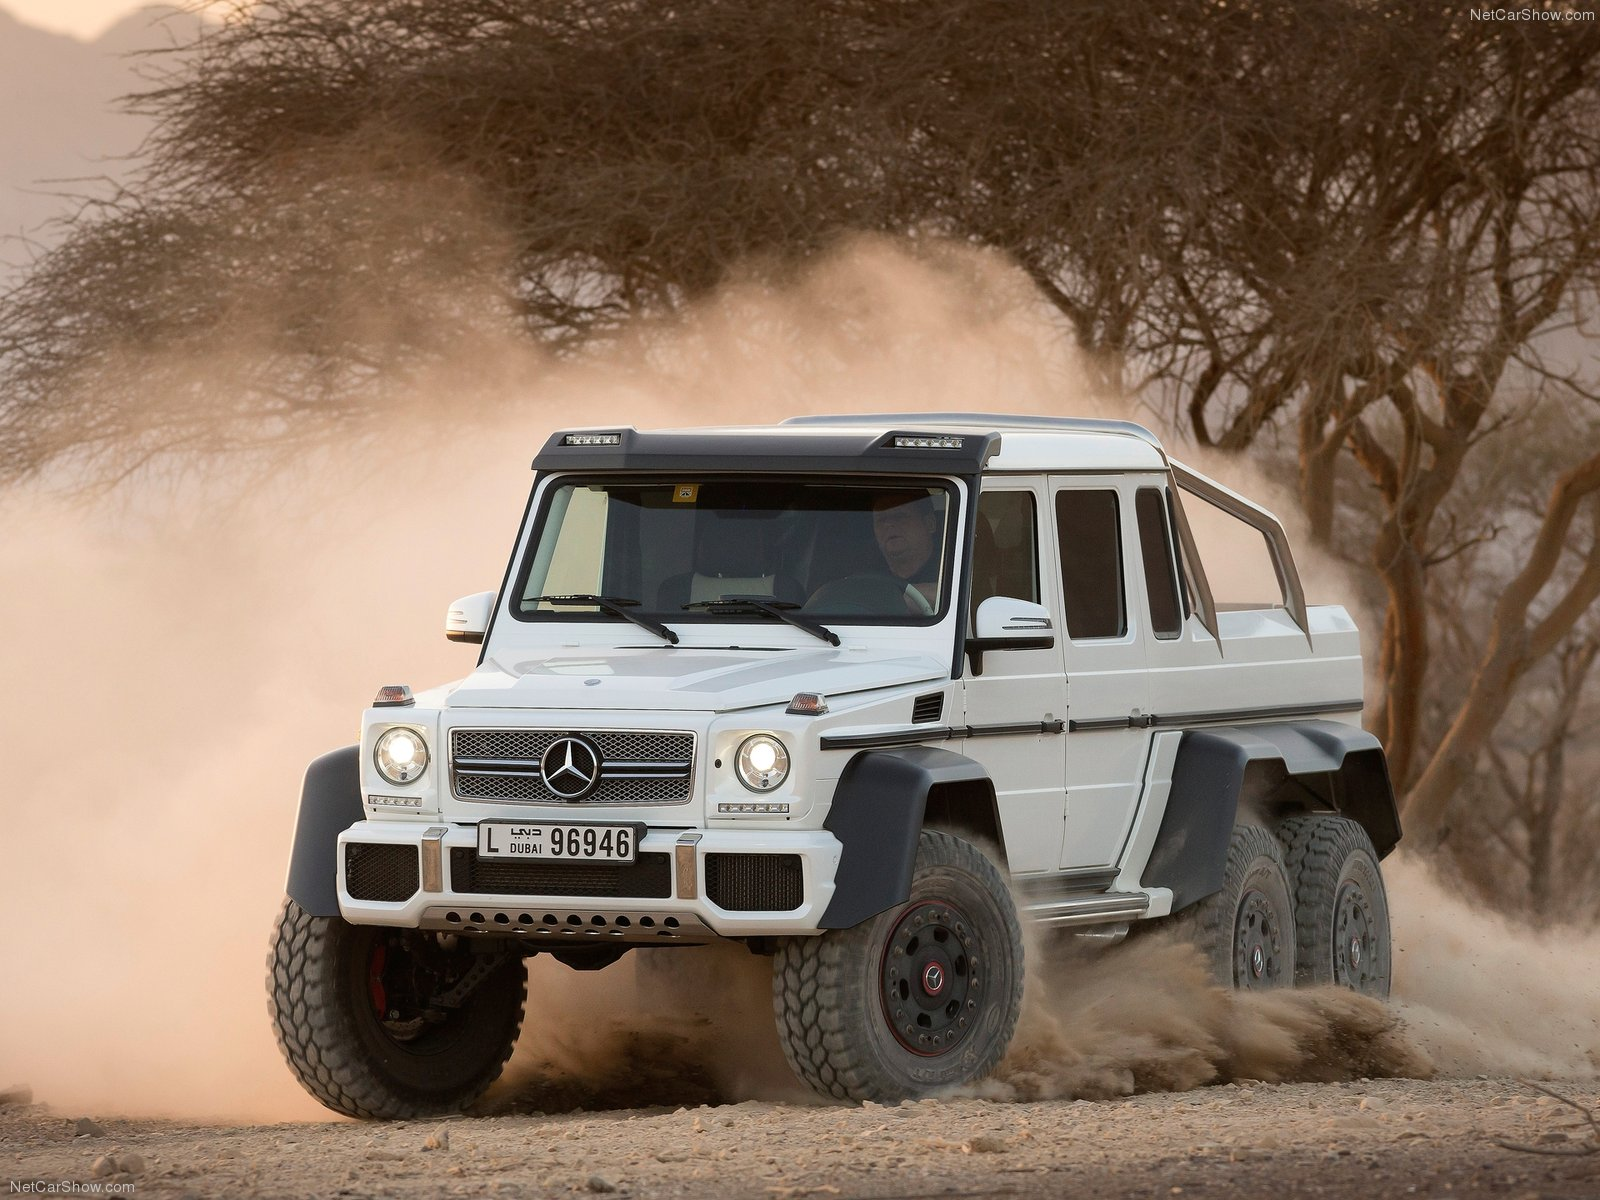 Mercedes G63 AMG 6x6 Luxury SUV 2013